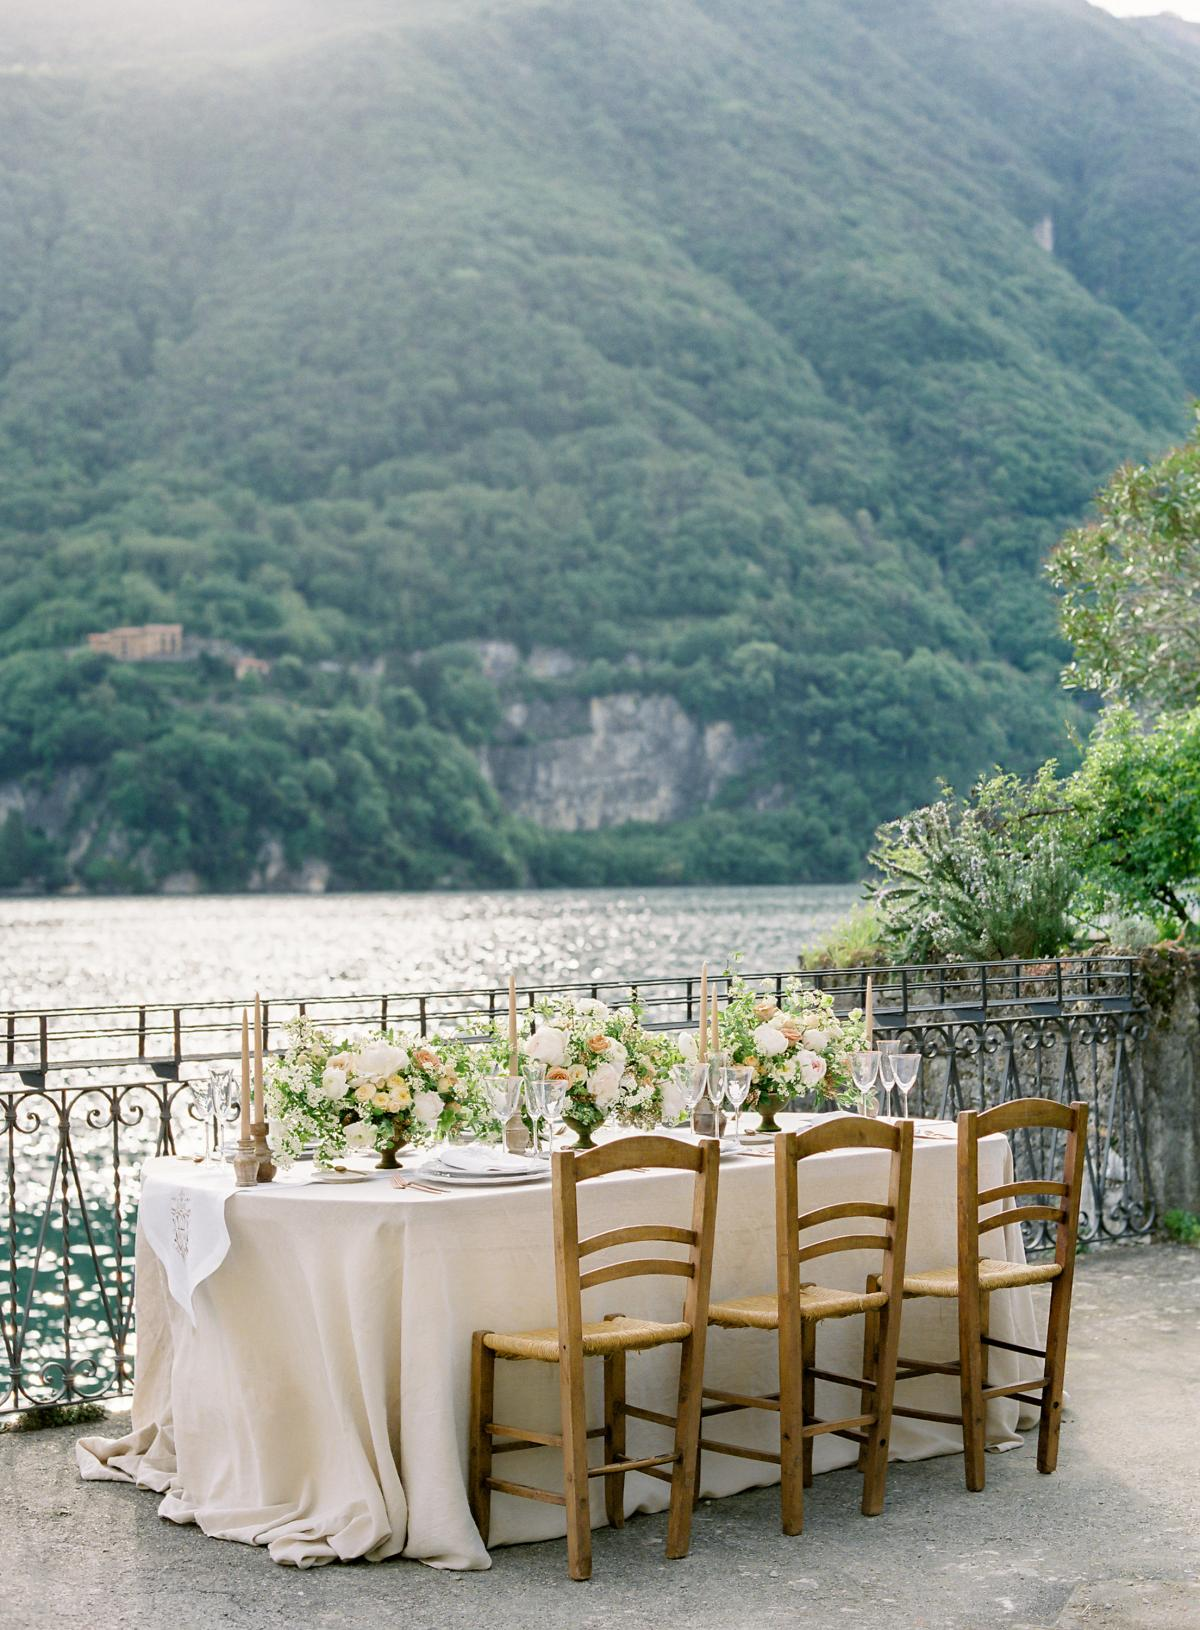 Lake Como Villa Del Balbianello Wedding Omalley Photographers 0016